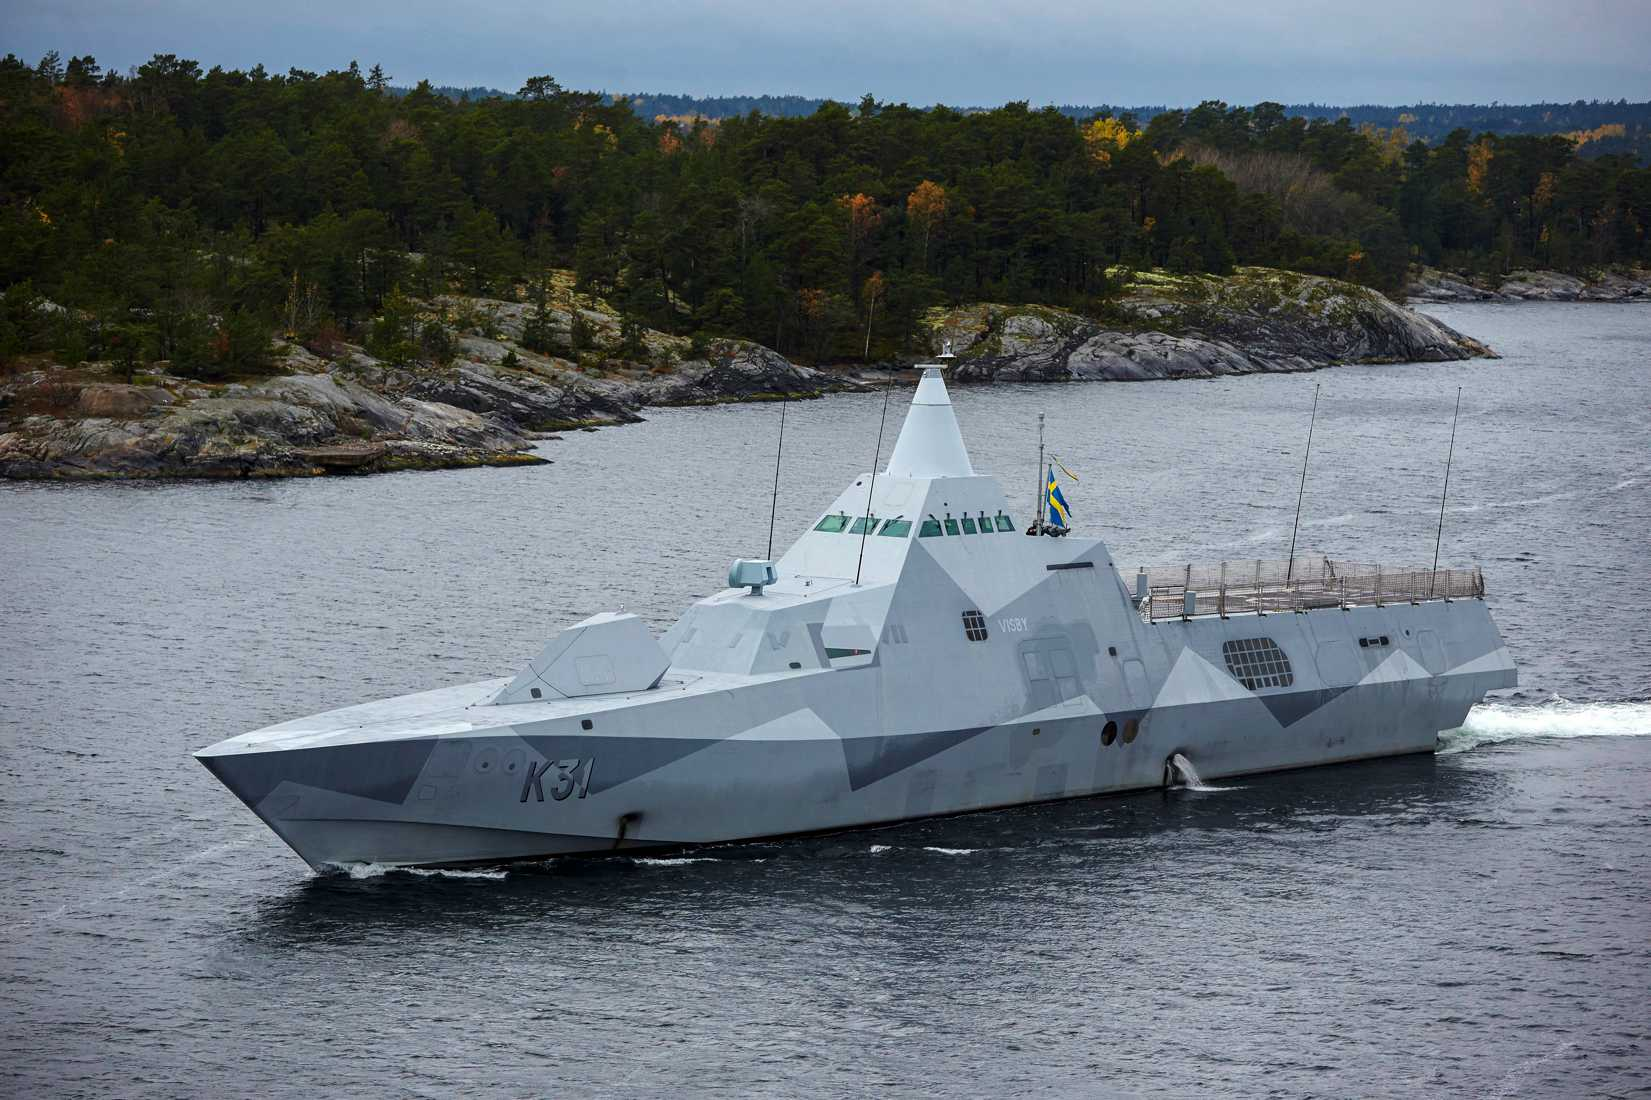 Swedish corvette HMS Visby patrols the Stockholm Archipelago October 19 2014, searching for what the military says is a foreign threat in the waters.